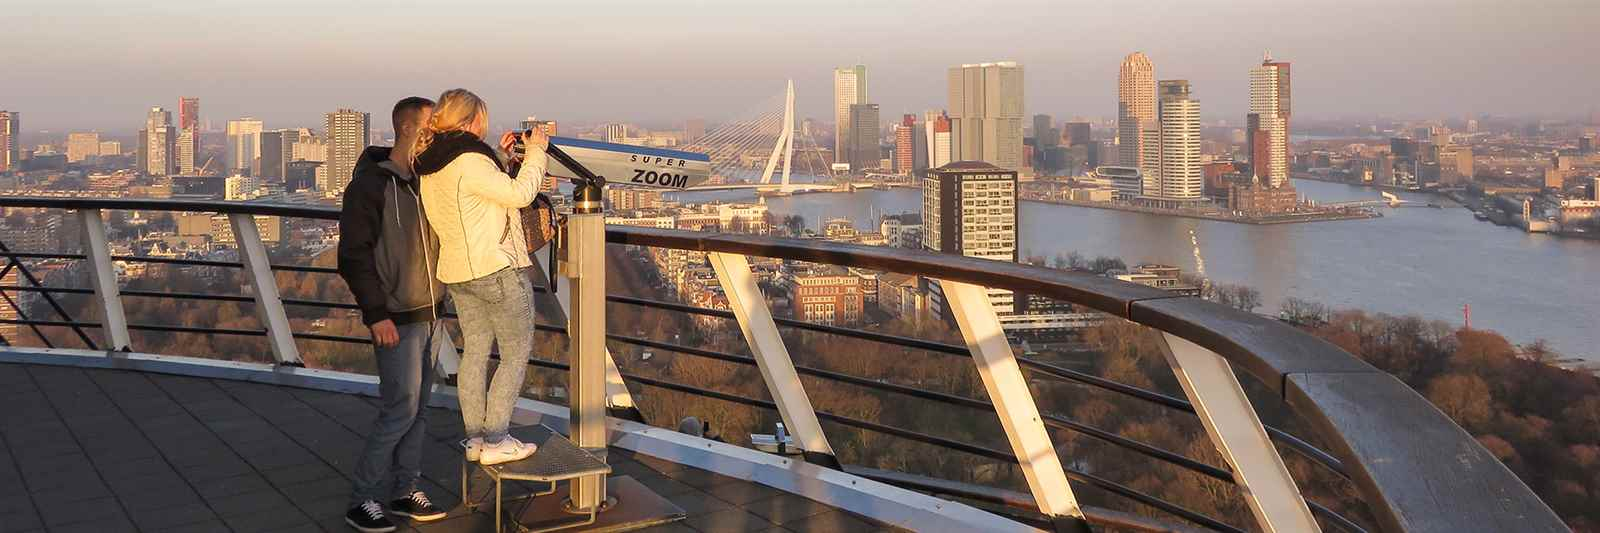 /book/hostels/hotels/rotterdam/netherlands